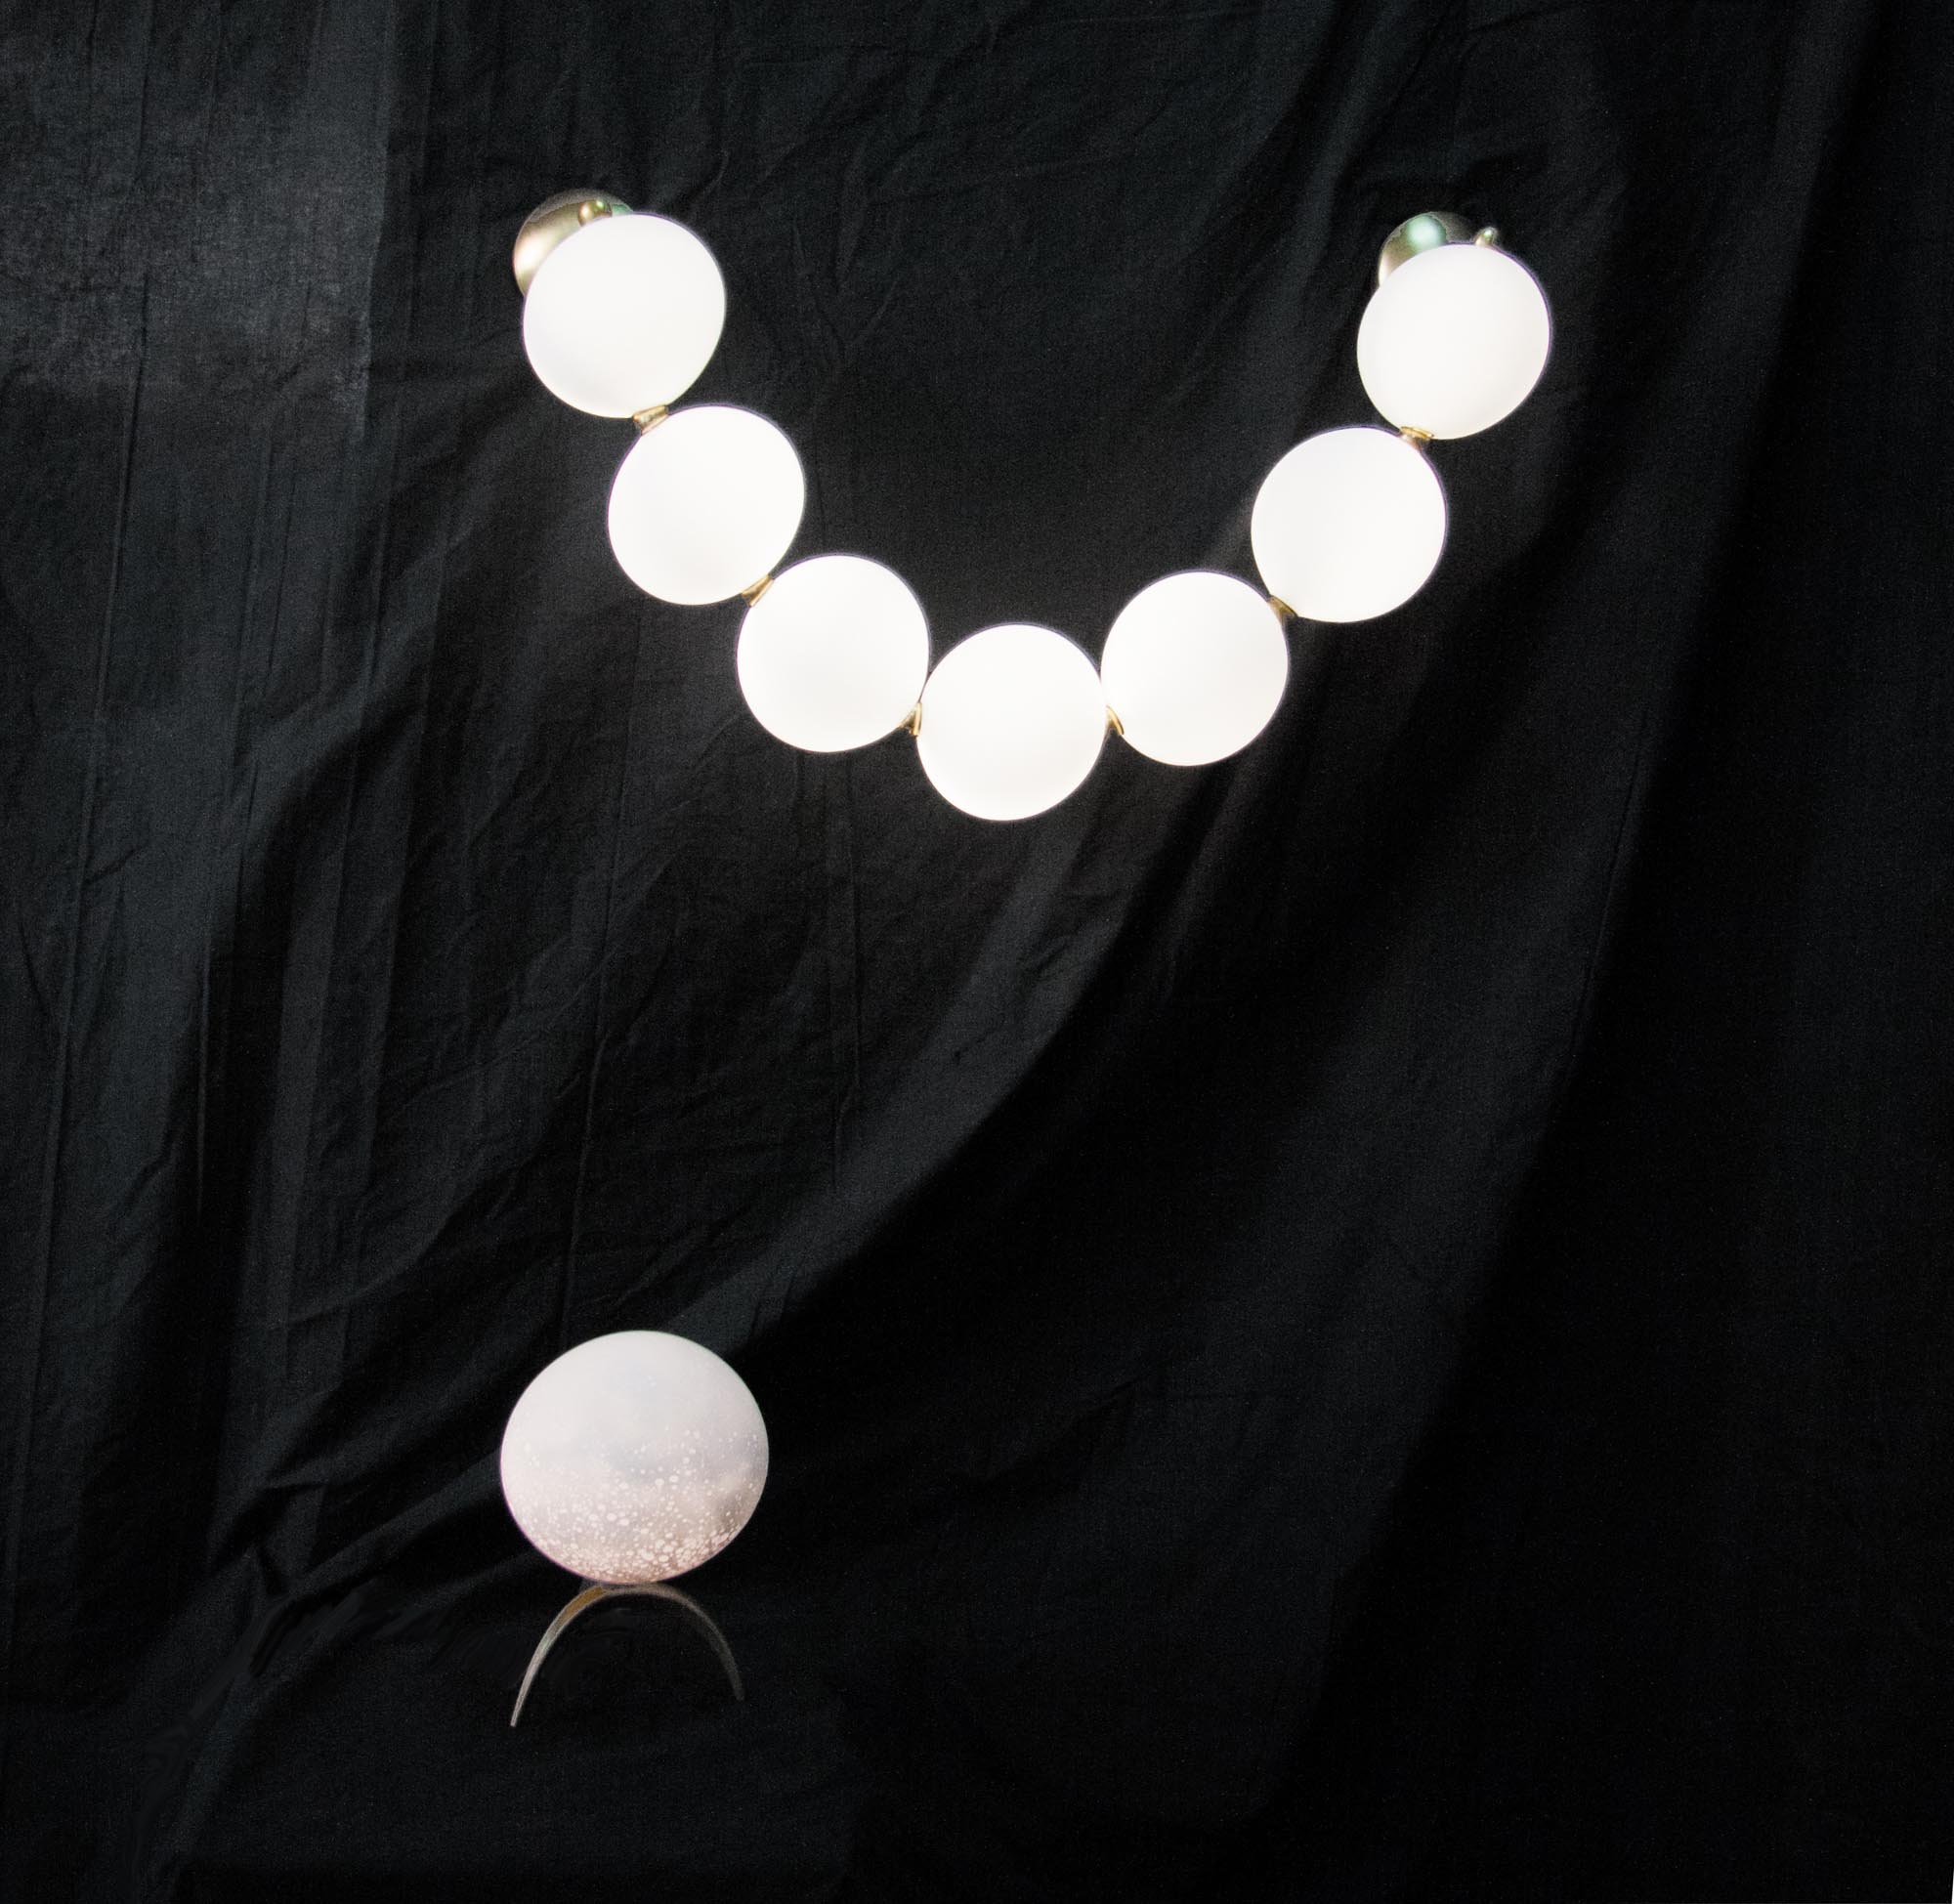 7 Perles wall light with double hanging, HLD 50x80x17cm (flexible therefore adjustable)